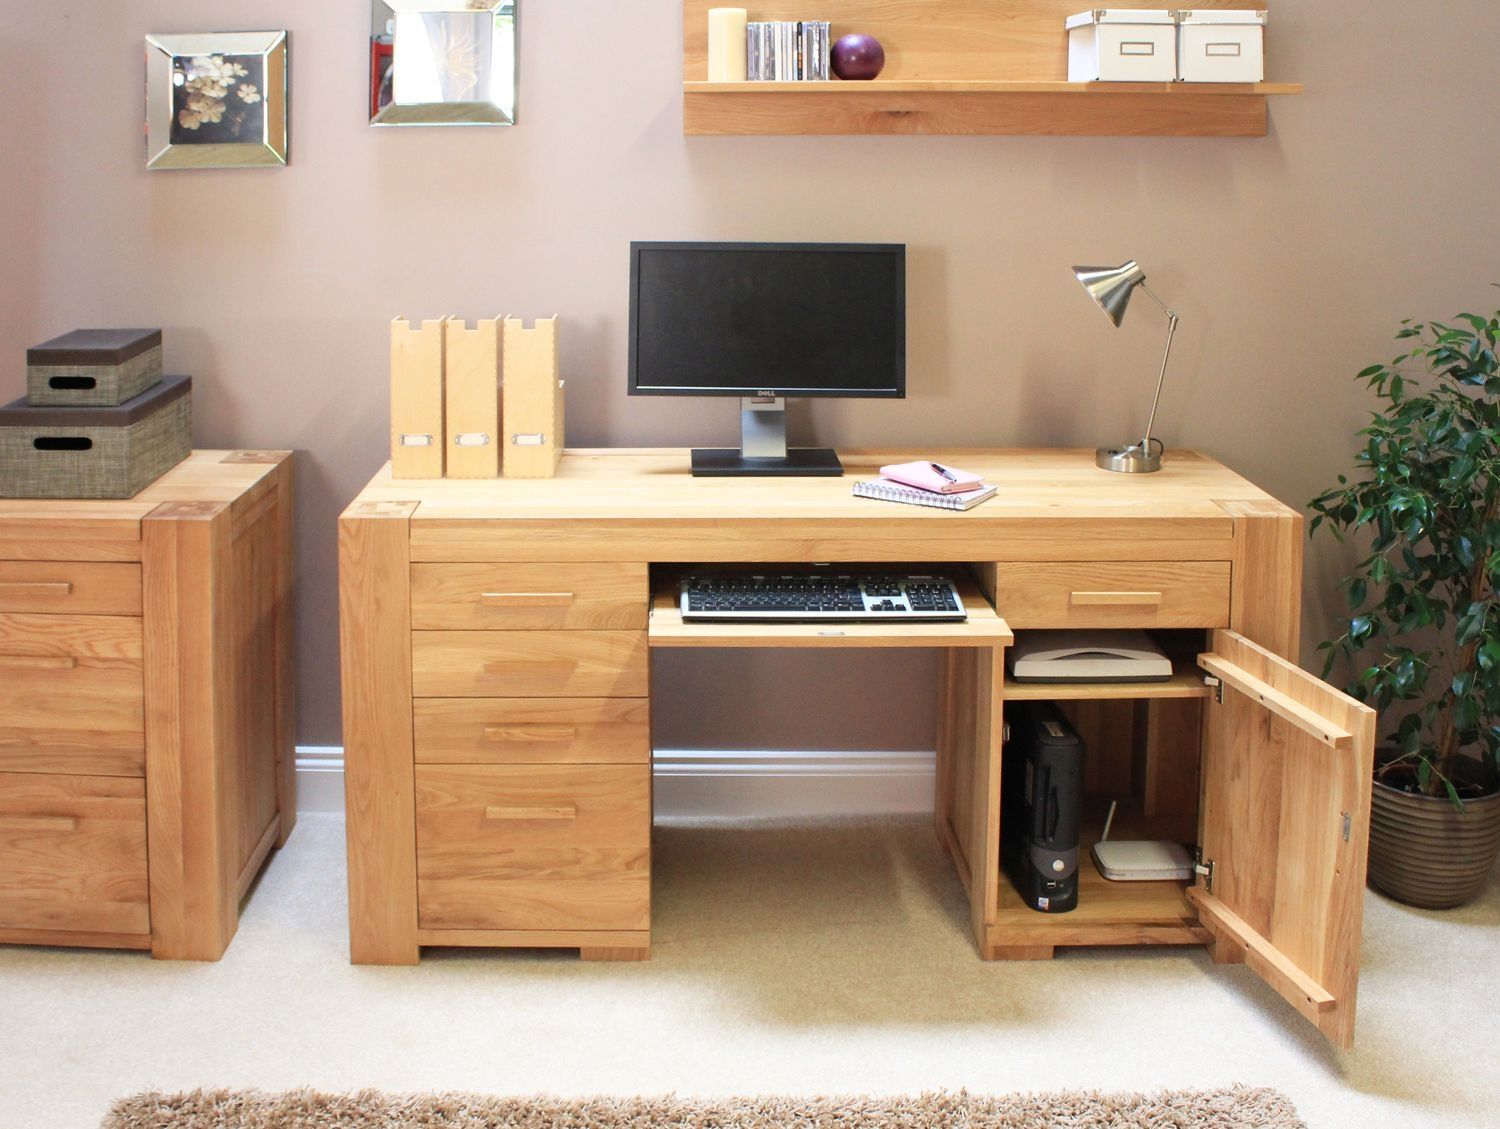 desks for home in small oak desk with drawers image source www